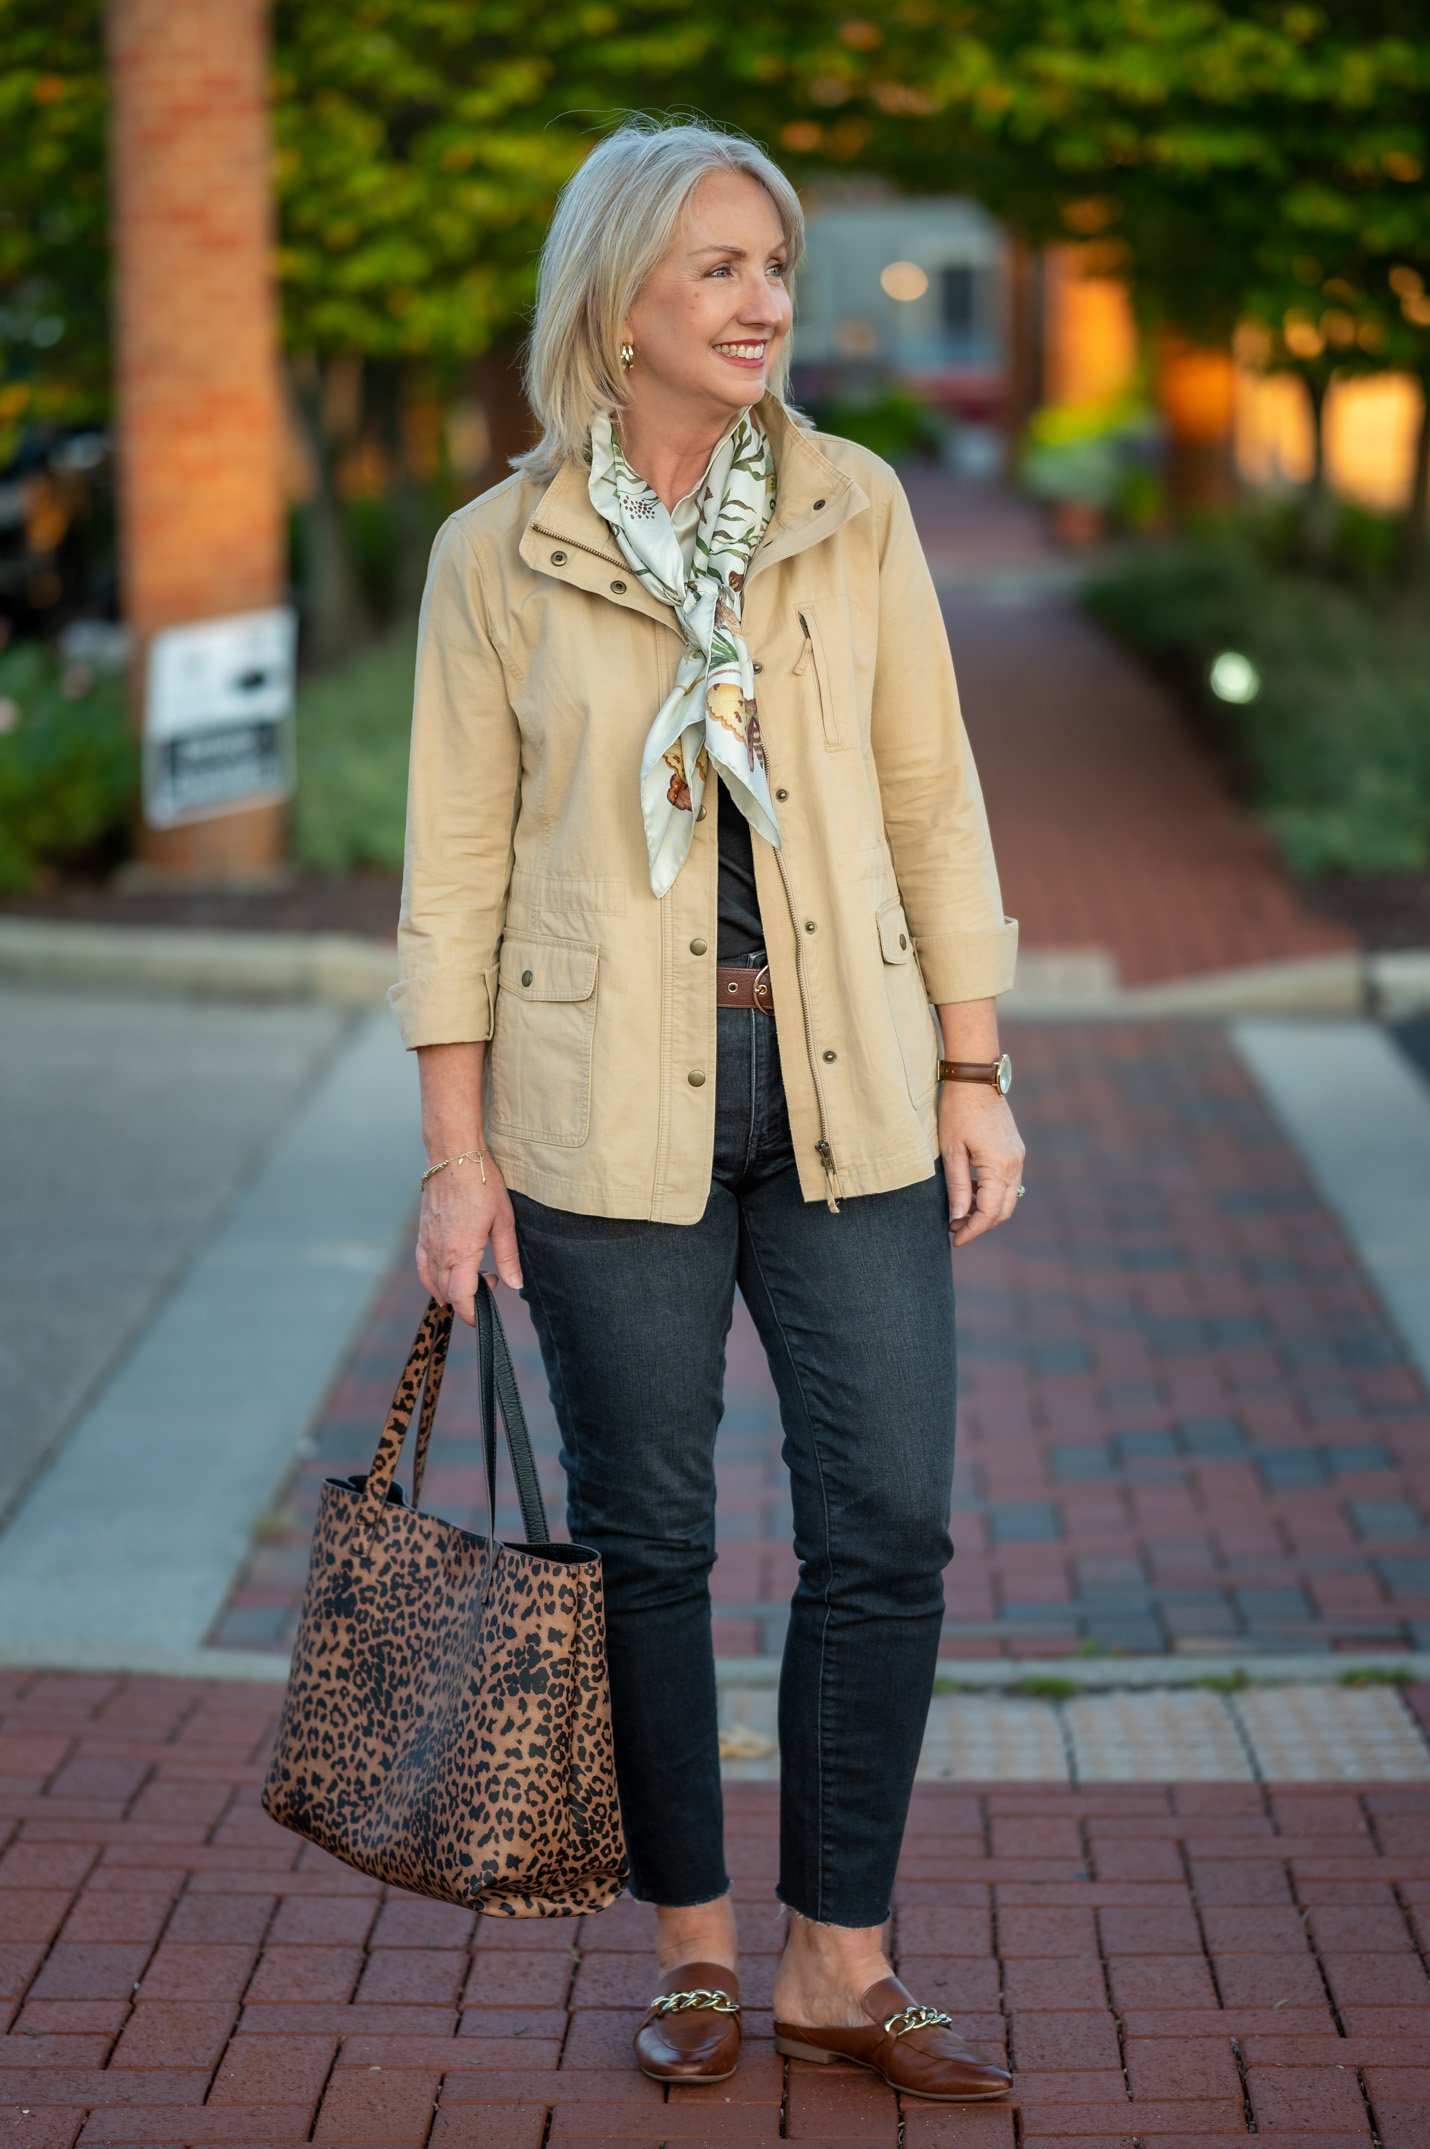 Mixing Neutrals and Prints for Fall